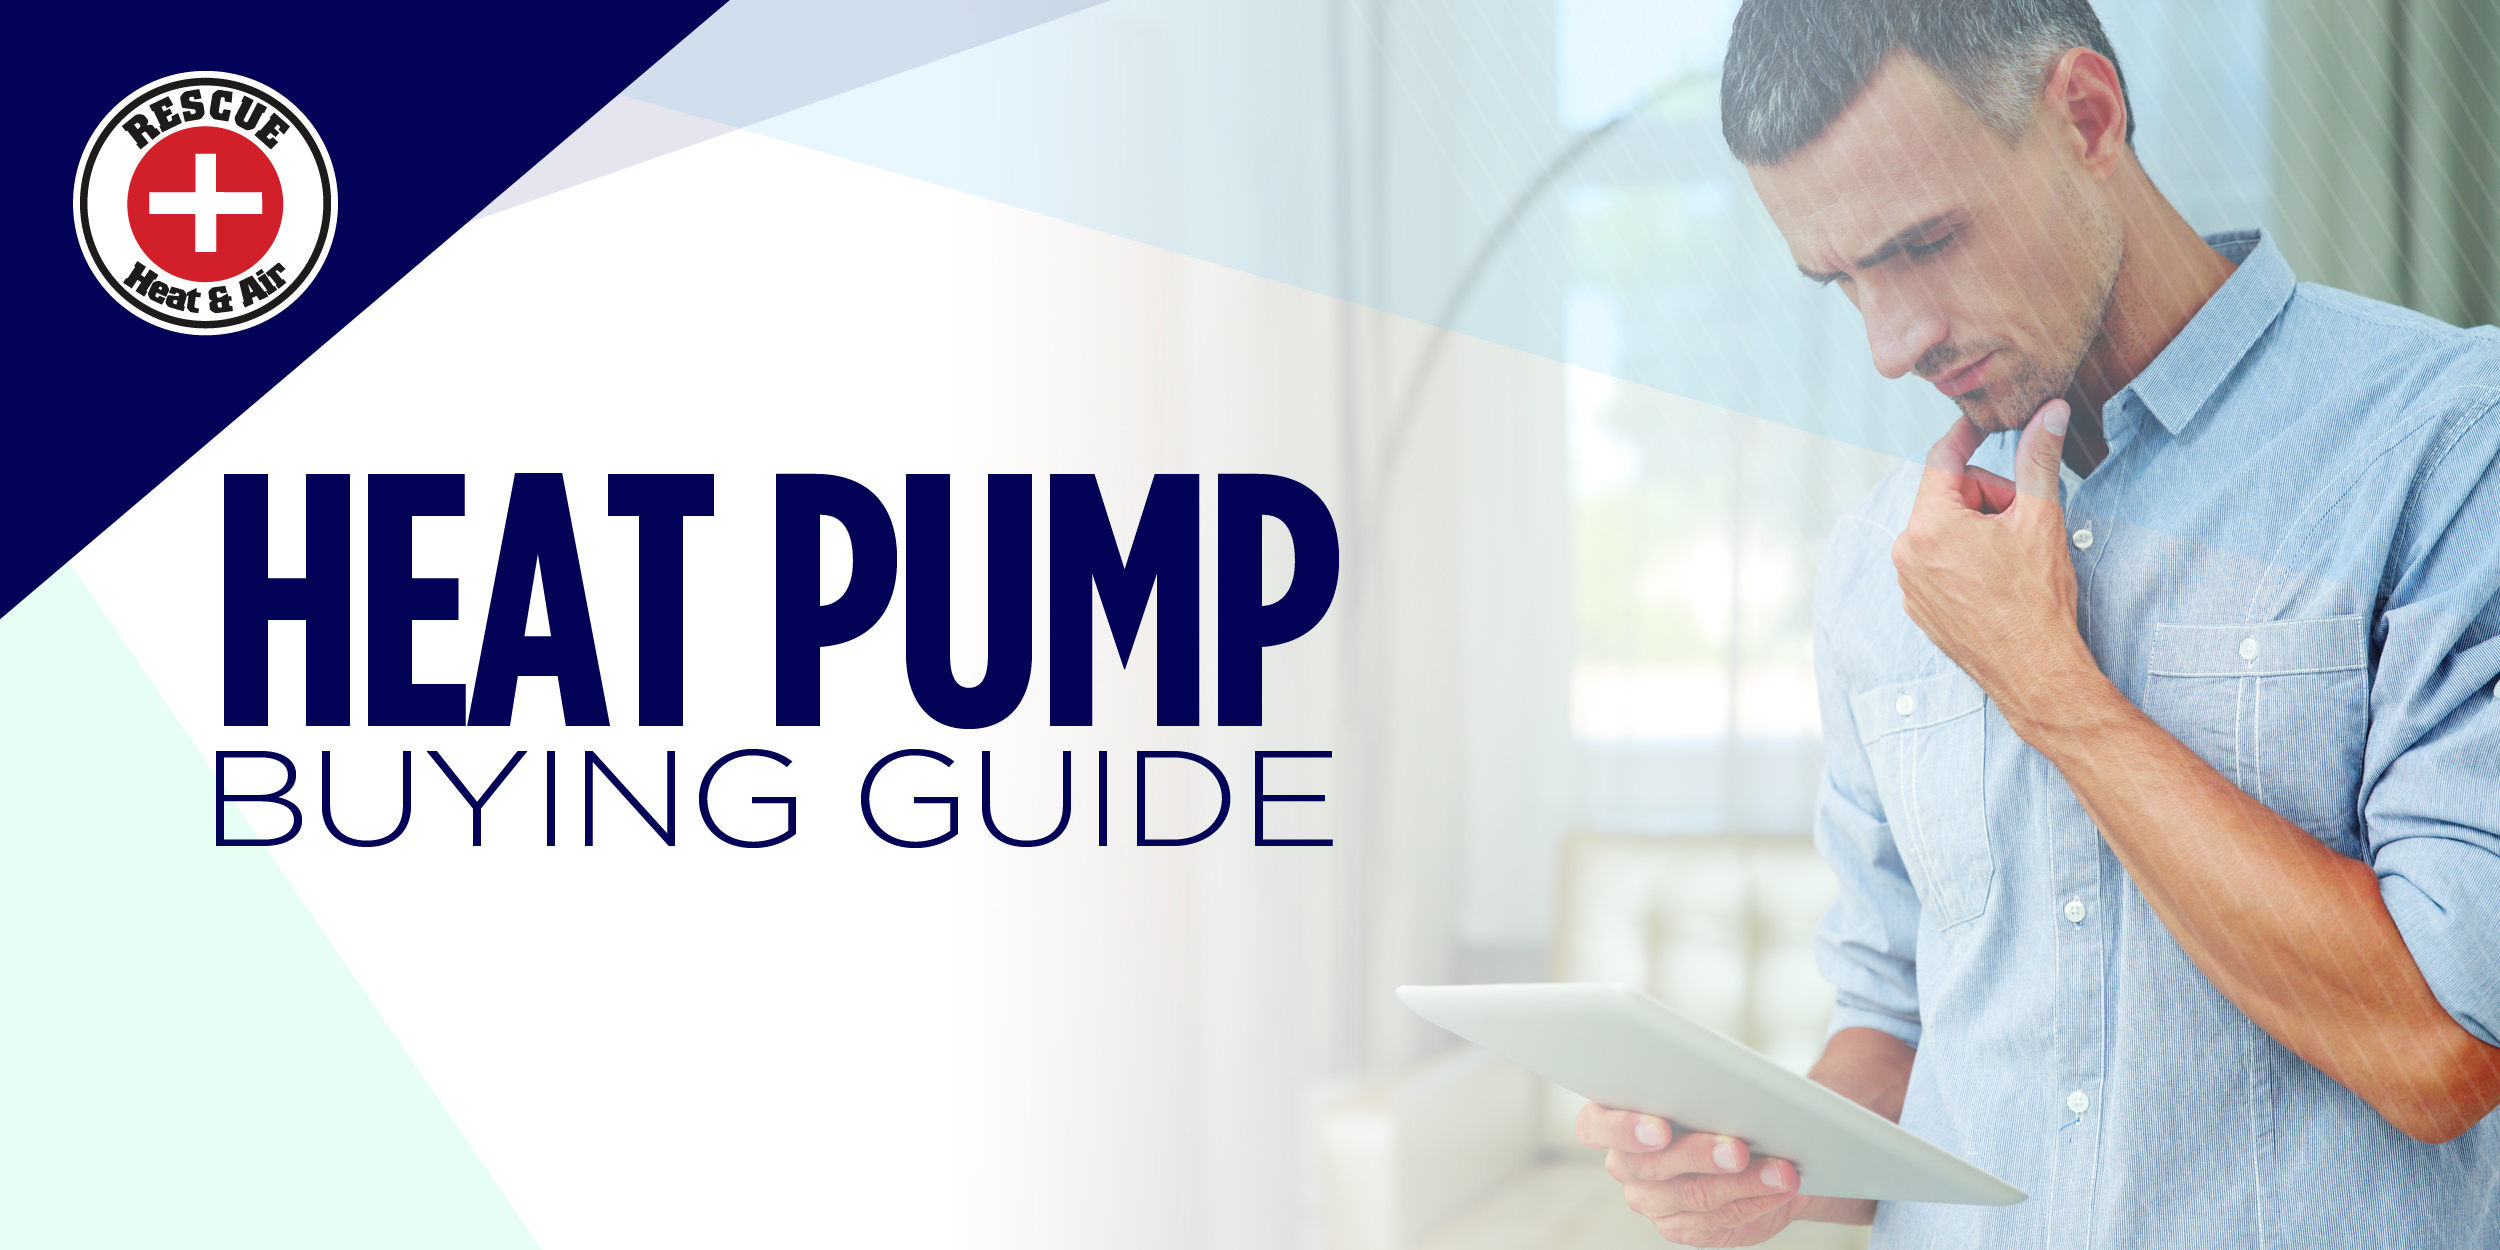 Heat Pump Buying Guide